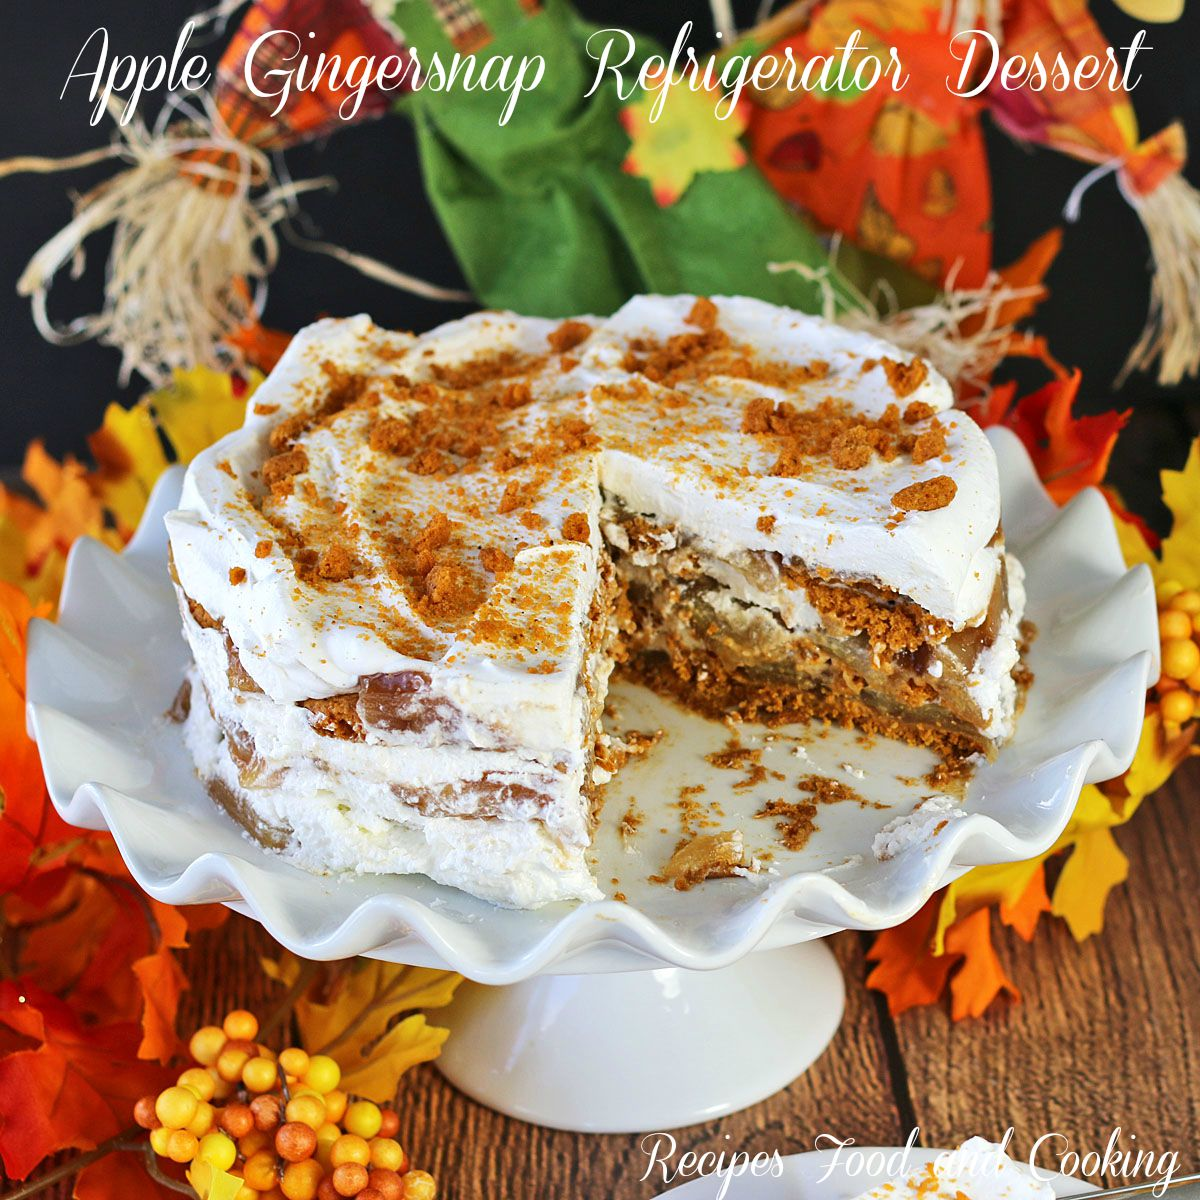 Apple Gingersnap Refrigerator Dessert